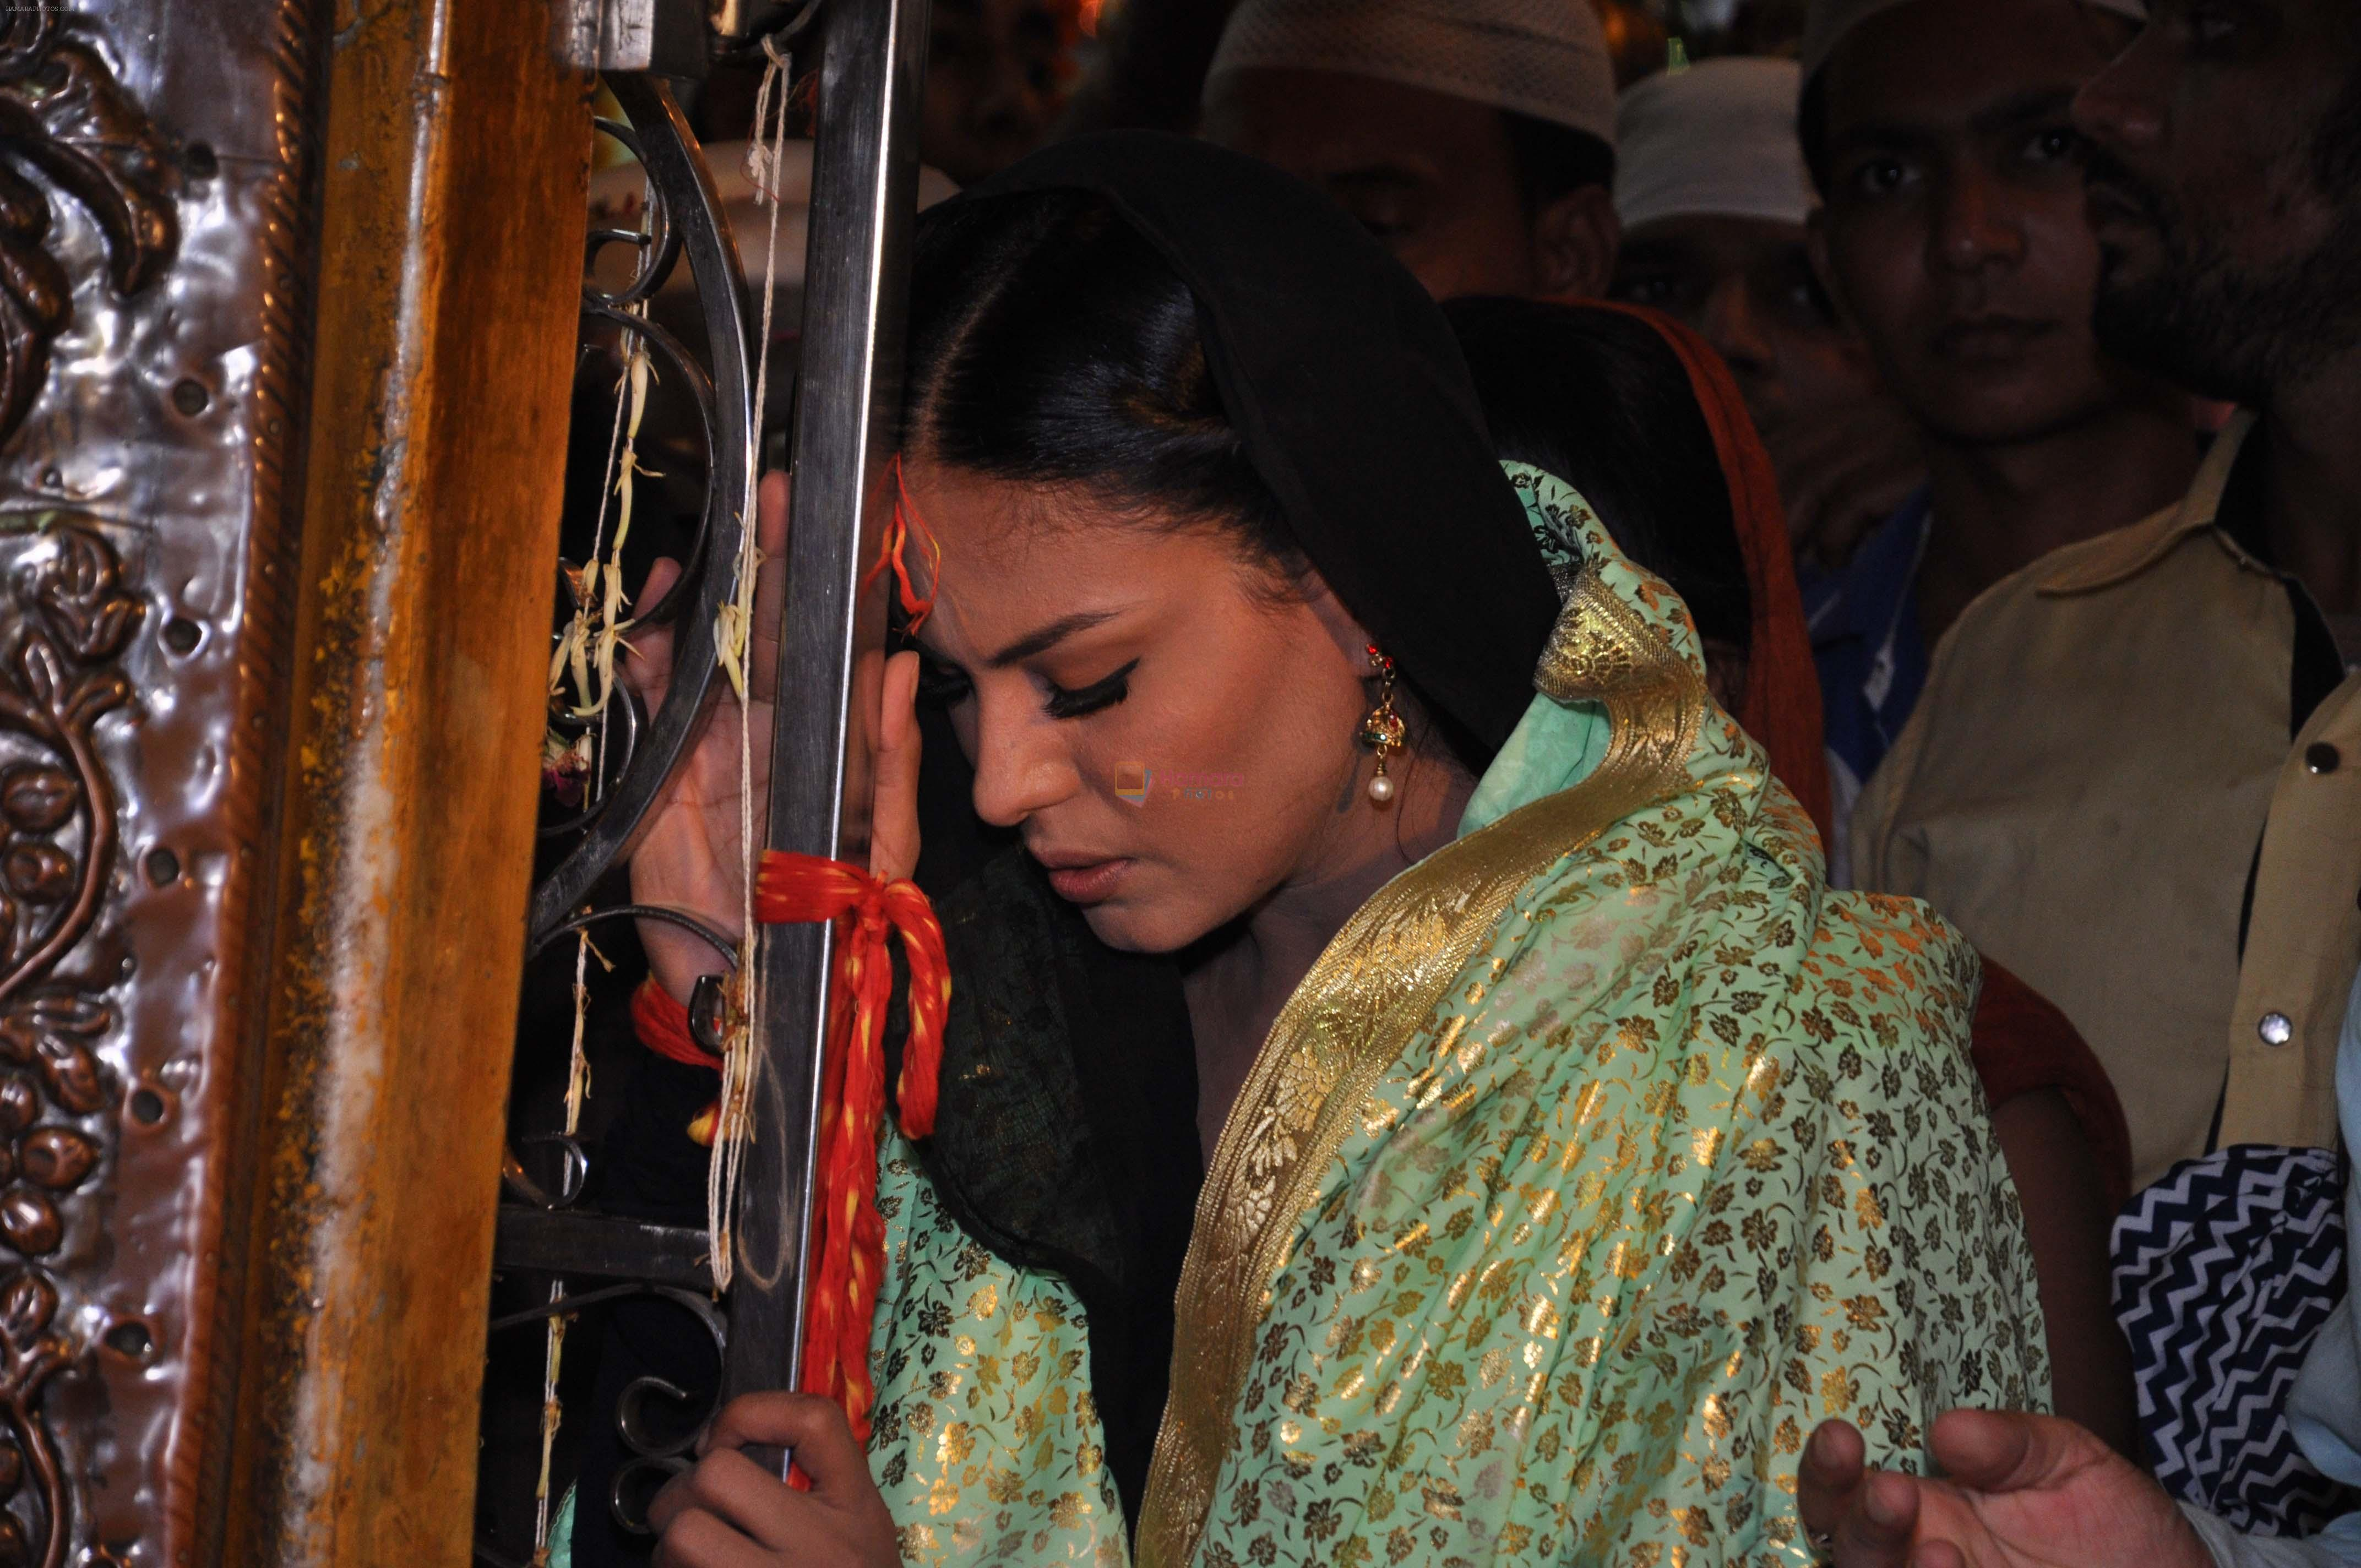 Veena Malik At Hazrat Nizamuddin Dargah In Delhi13